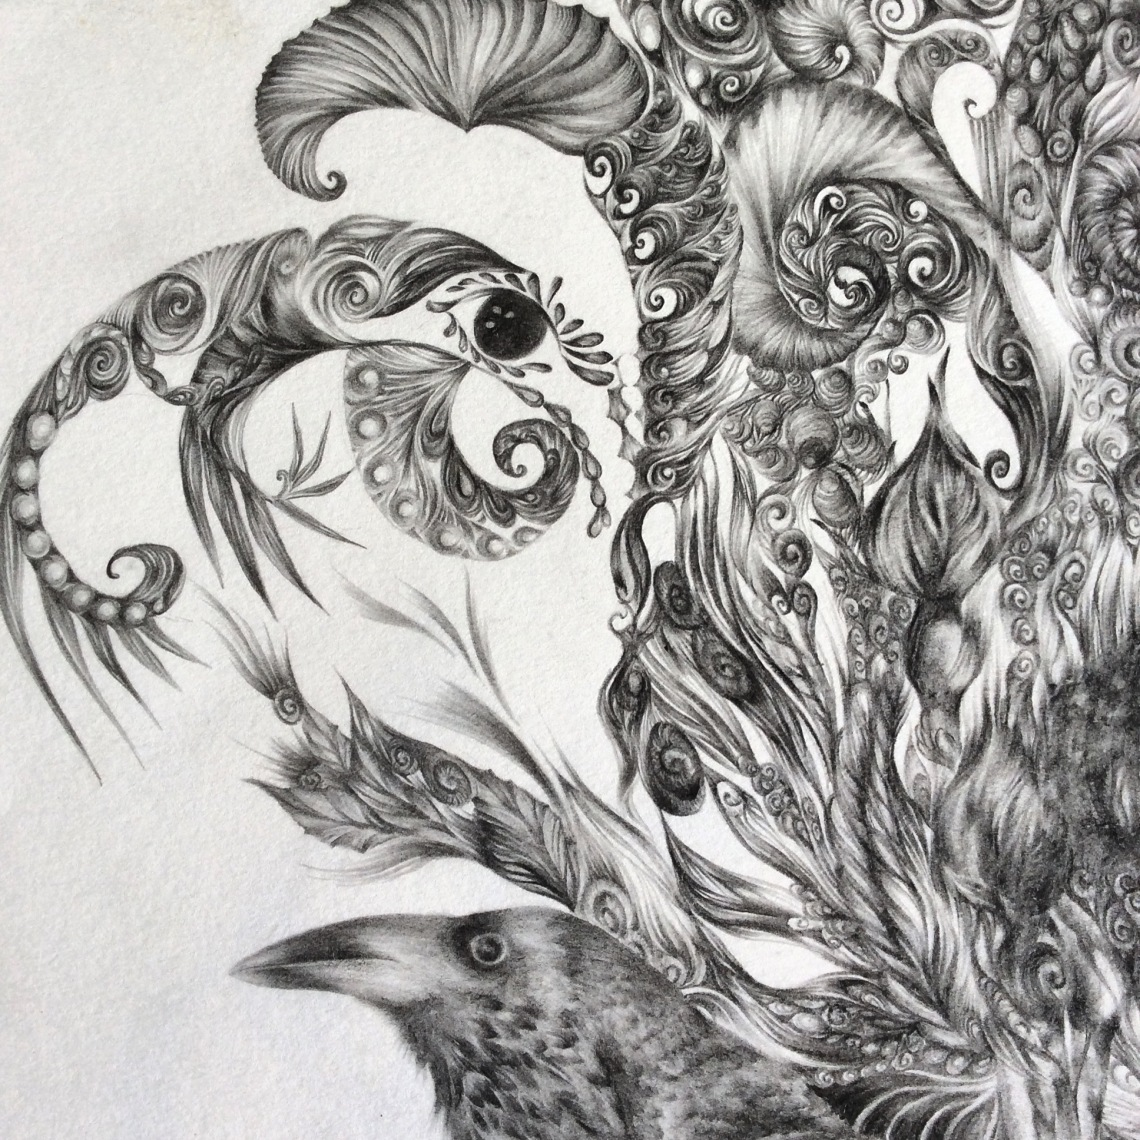 Nature-Inspired Pencil-Drawn Illustrations by Artist, Loren Danielle on Jung Katz Art Blog